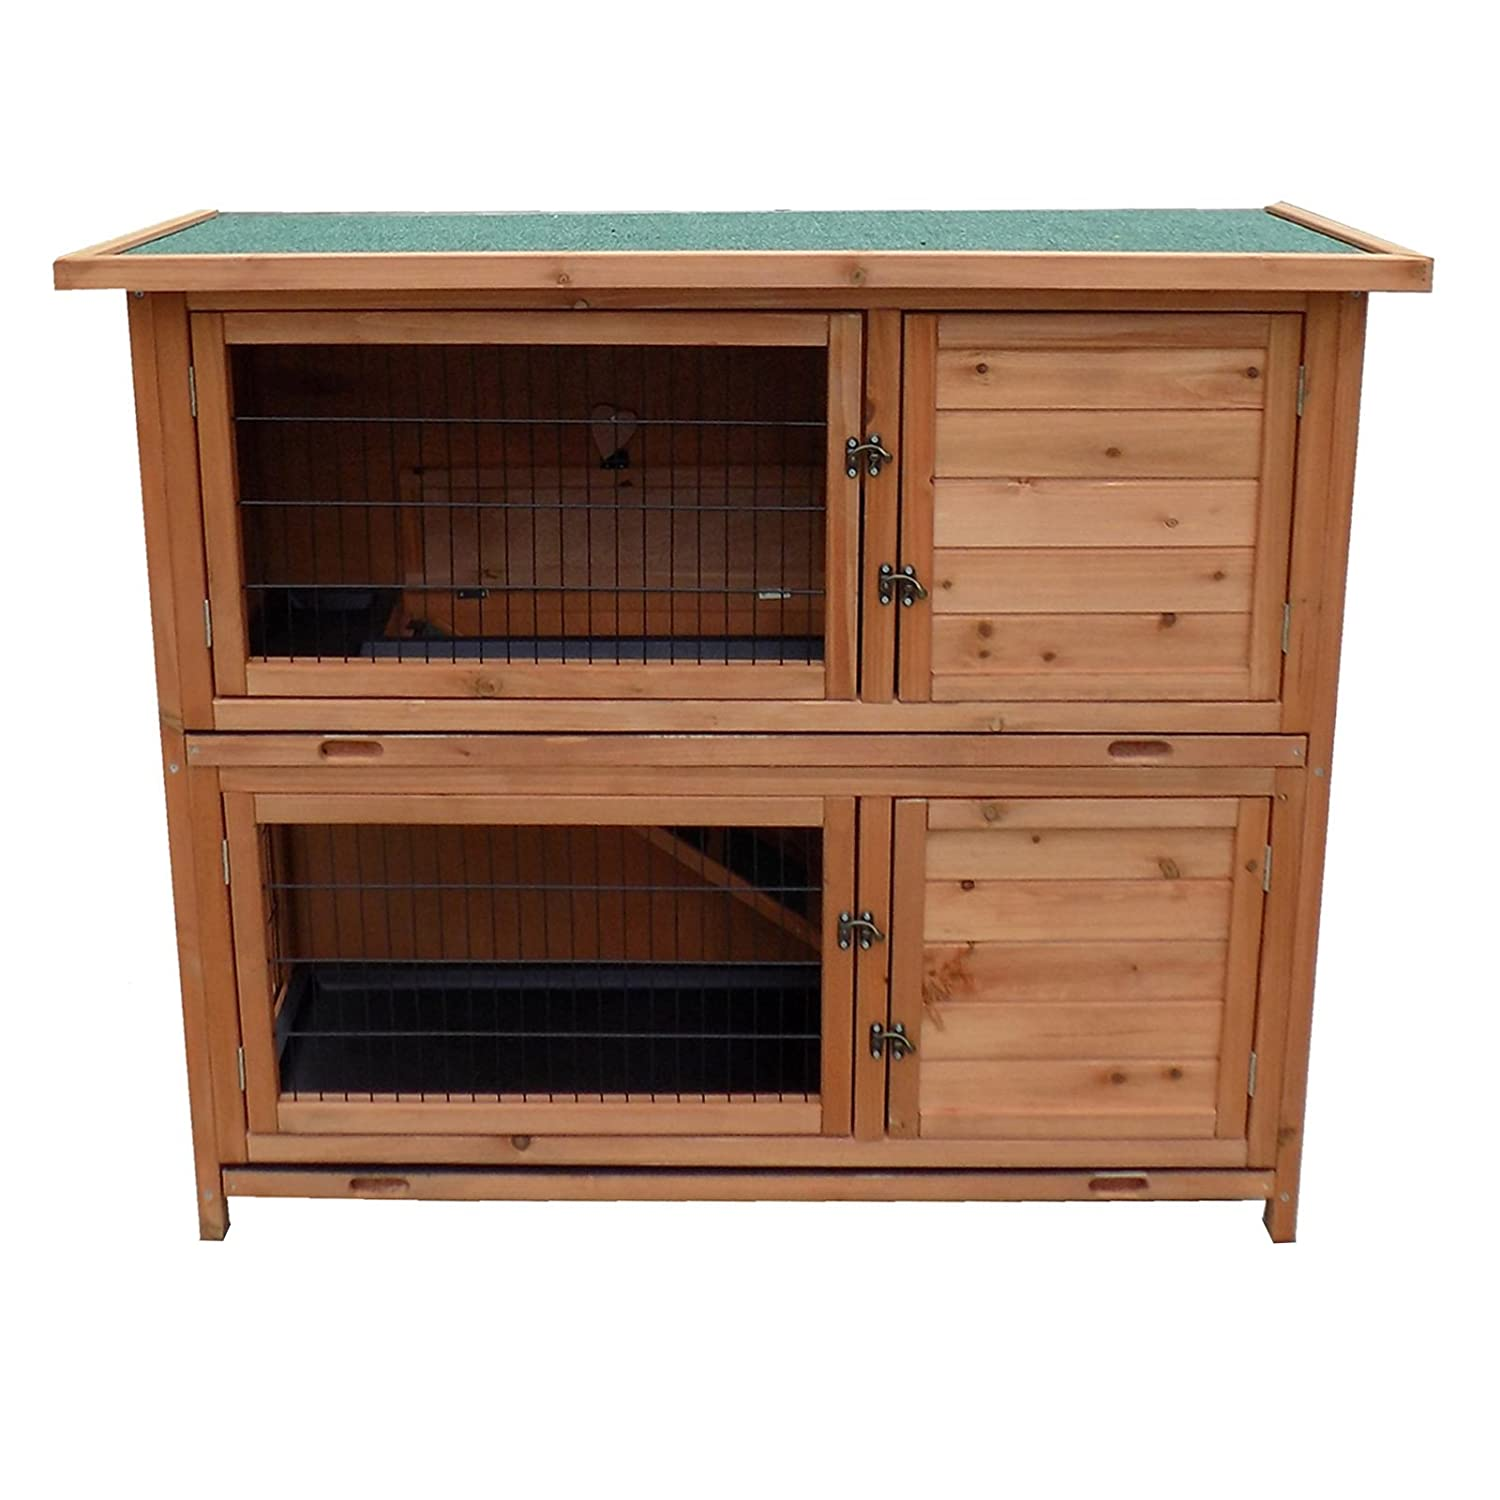 2-Story Rabbit Hutch Wood Pet House Guinea Pig Hamster